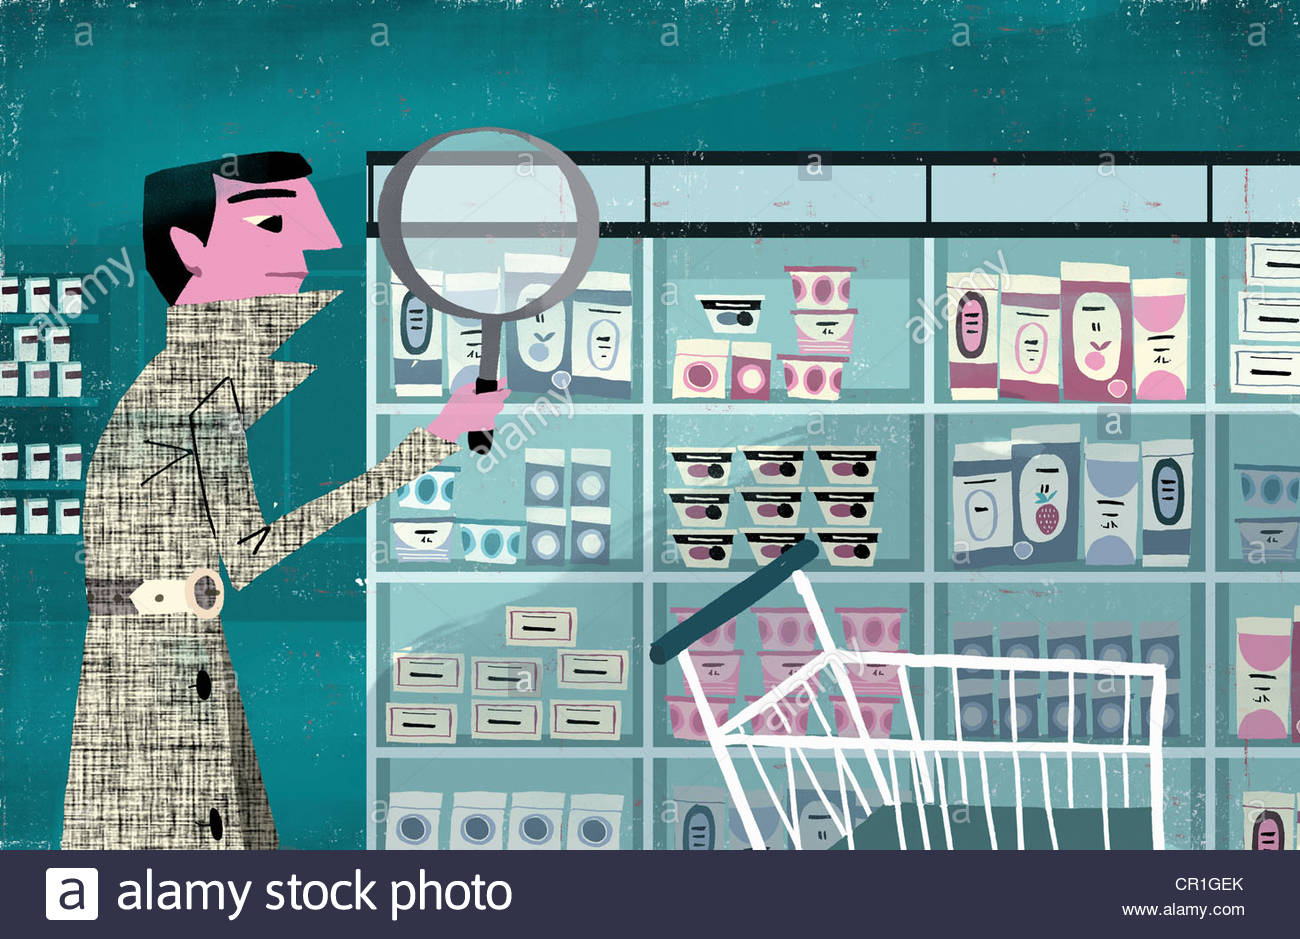 Detective examining products on supermarket shelf with magnifying glass - Stock Image